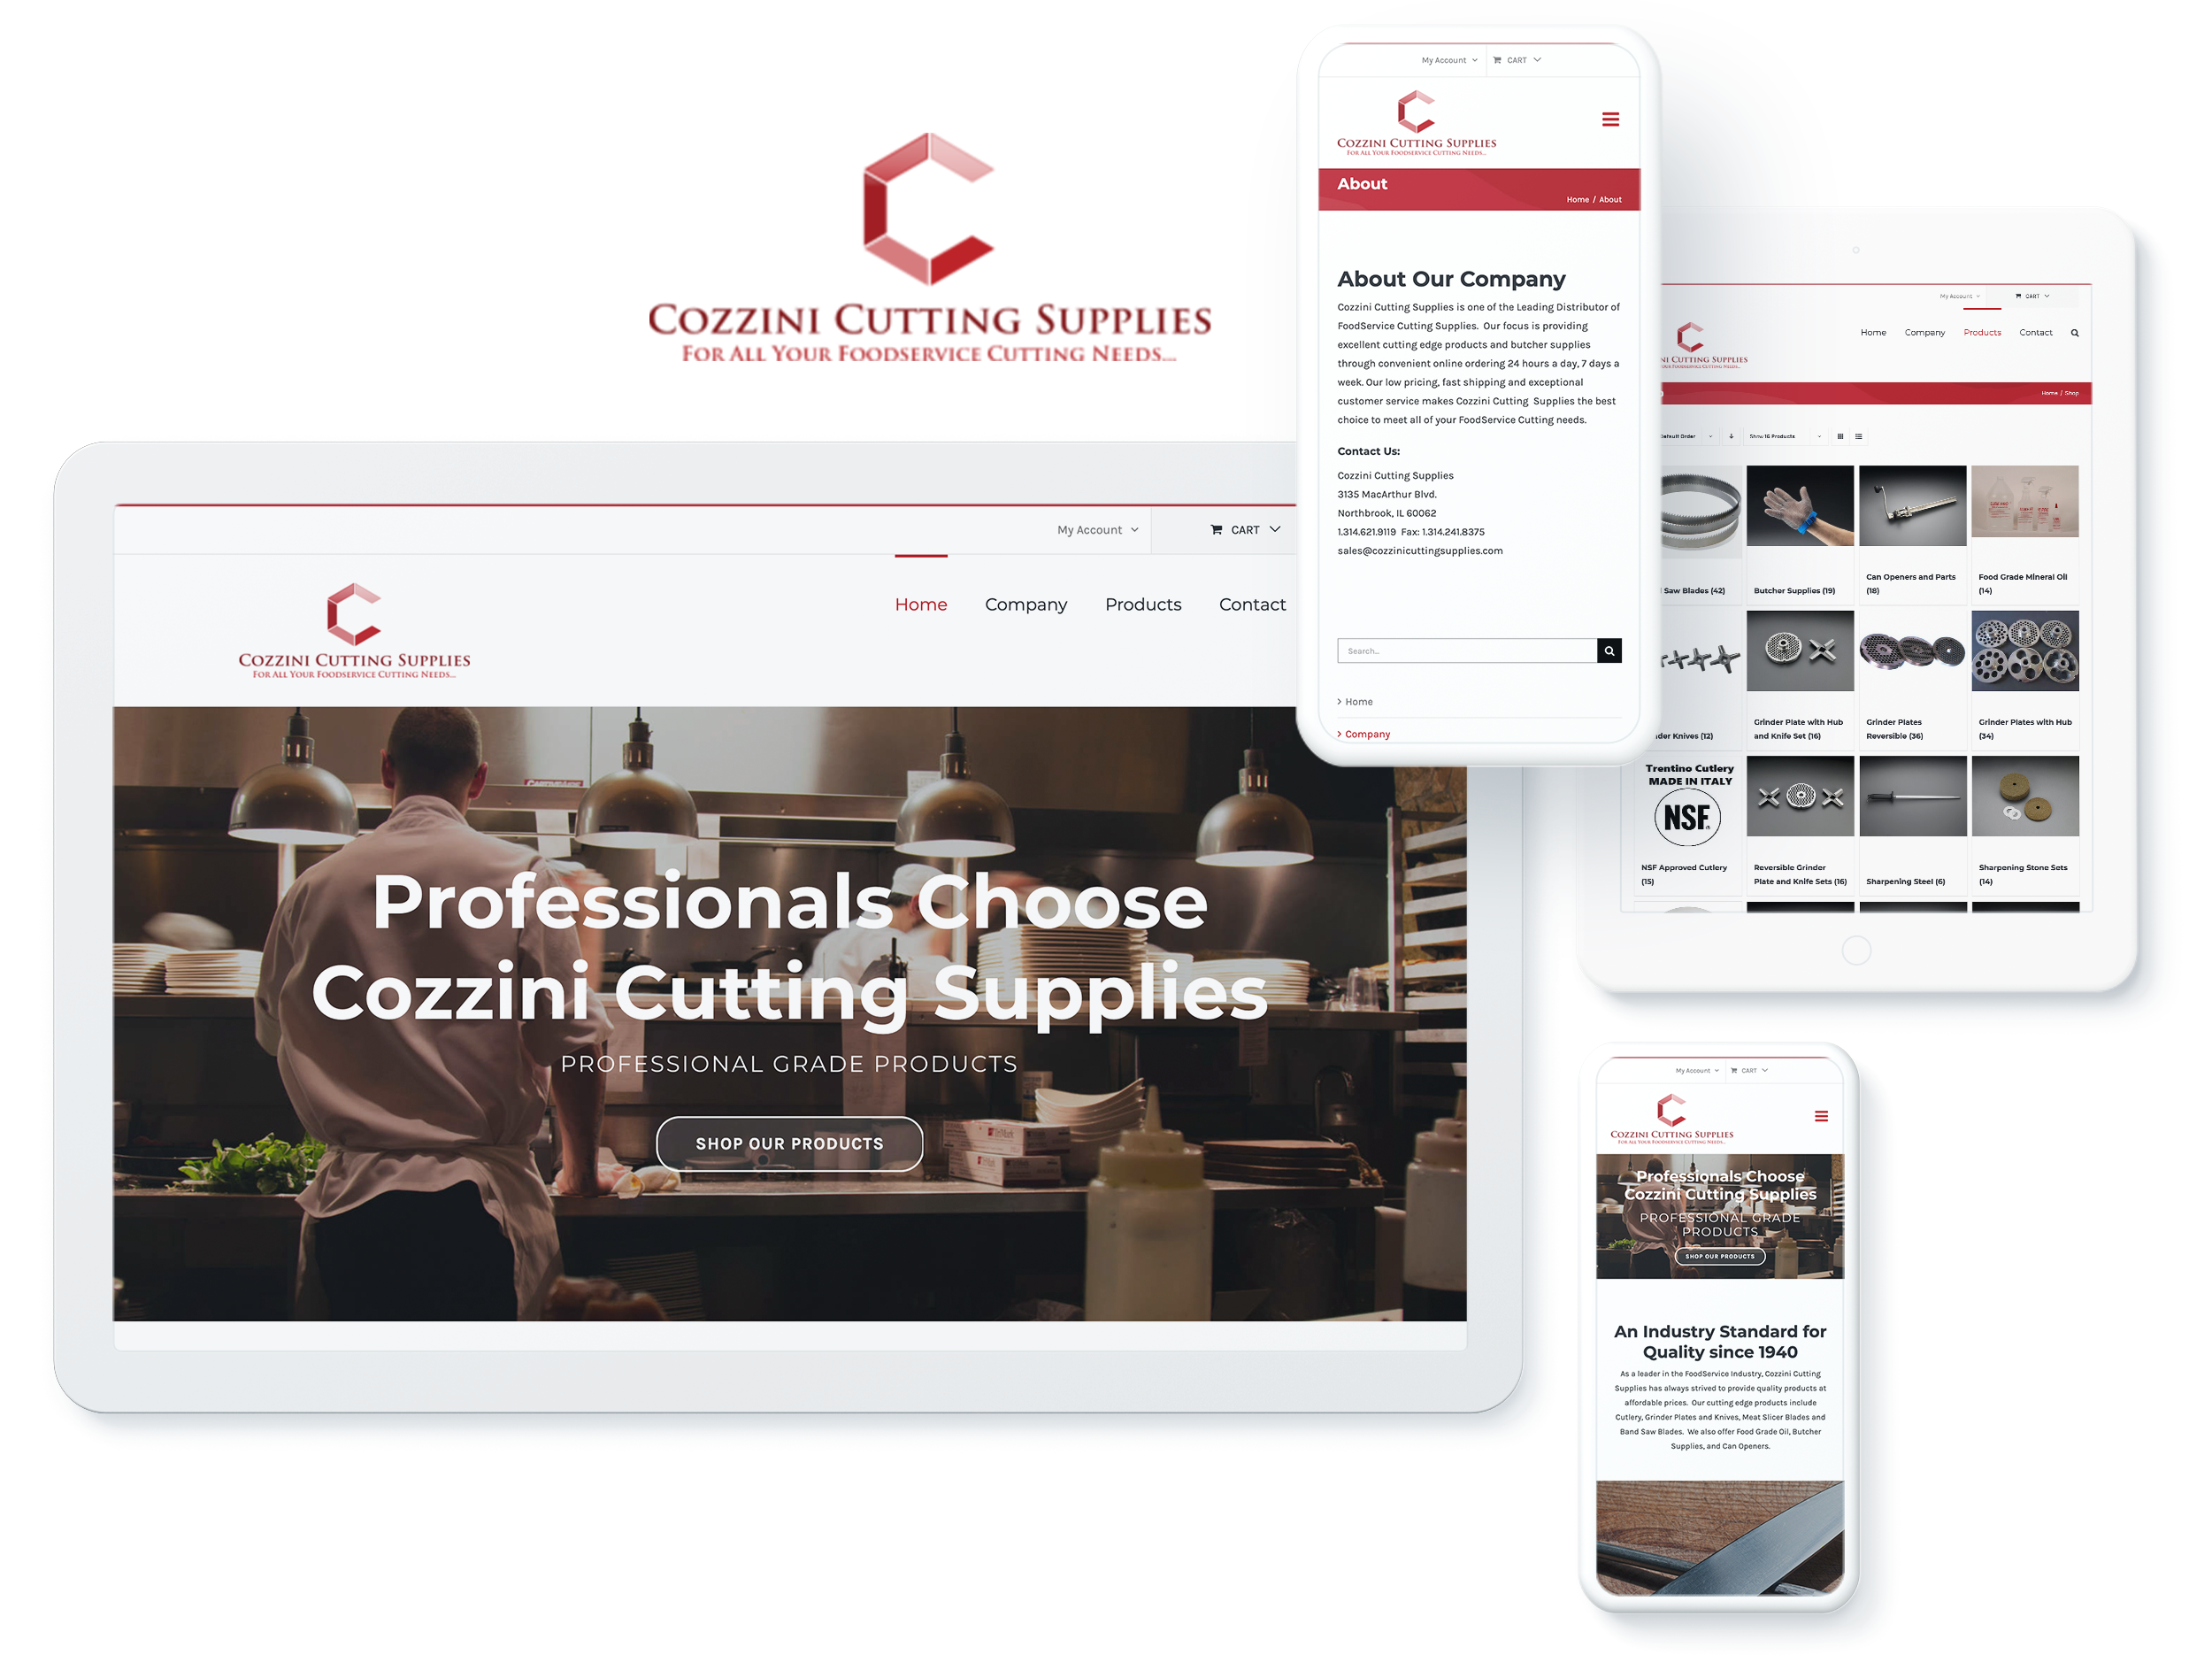 cozzini sutting supplies spotlight